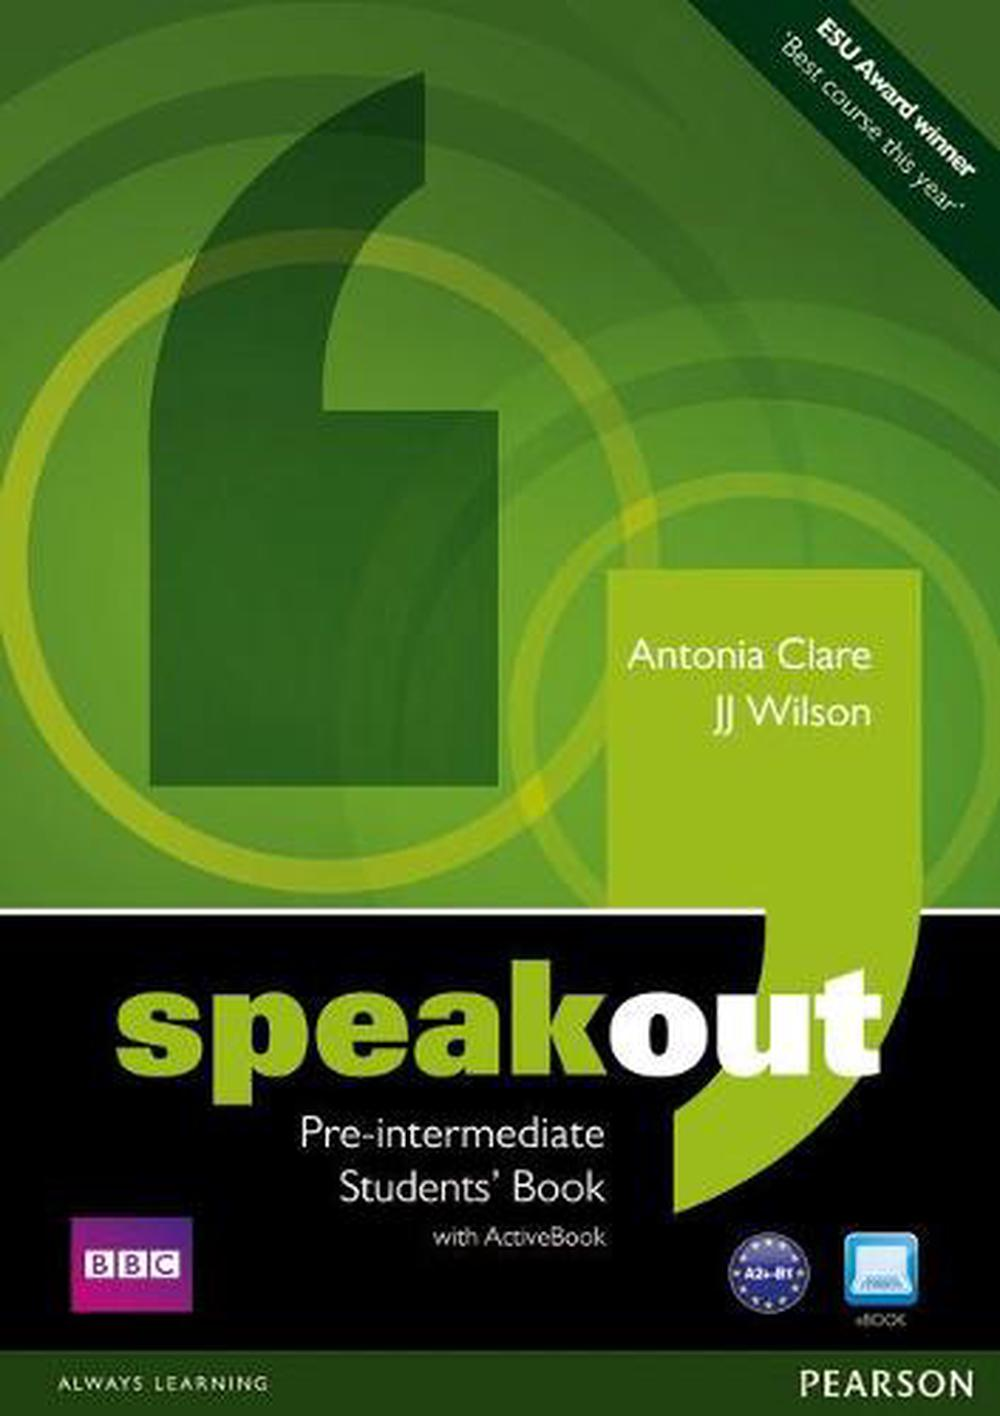 Workbooks speakout intermediate podcast worksheets : Speakout Pre-intermediate Students Book and Dvd/active Book Multi ...